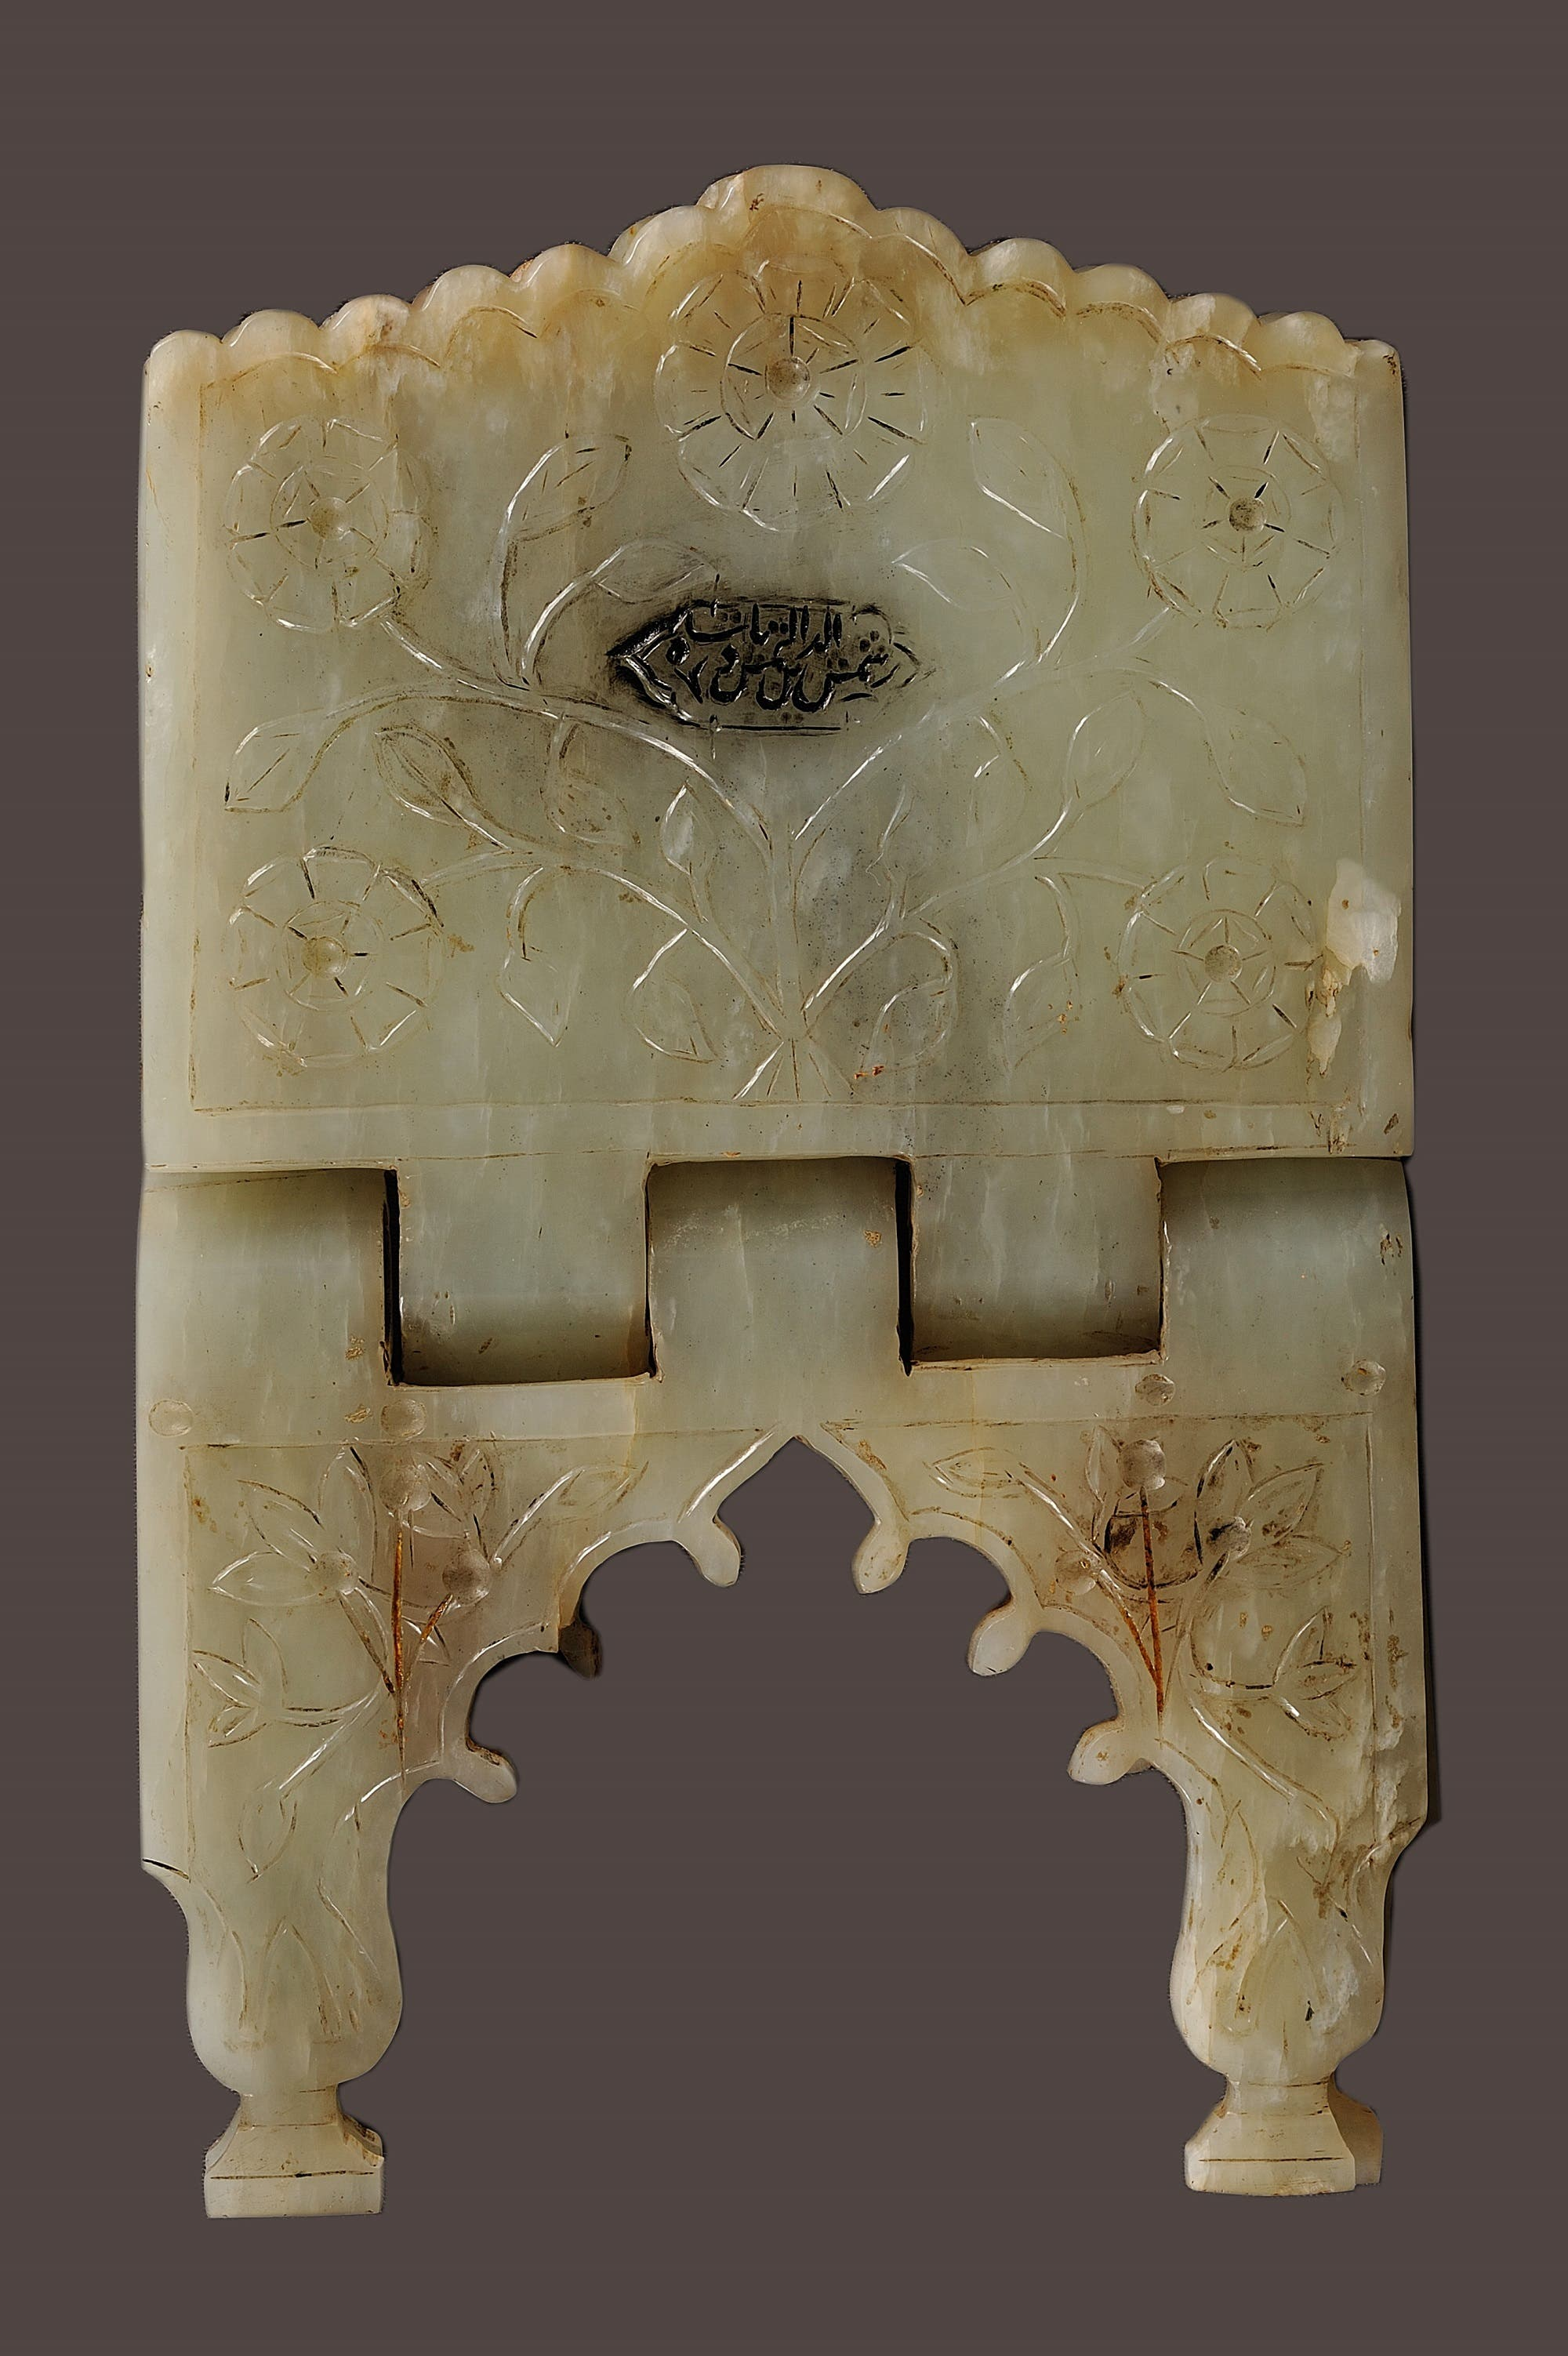 Miniature book-stand (rehal) with the name of Shamshuddin Iltatmish (ruler during Sultanate rule in India), 13th century. (Supplied)